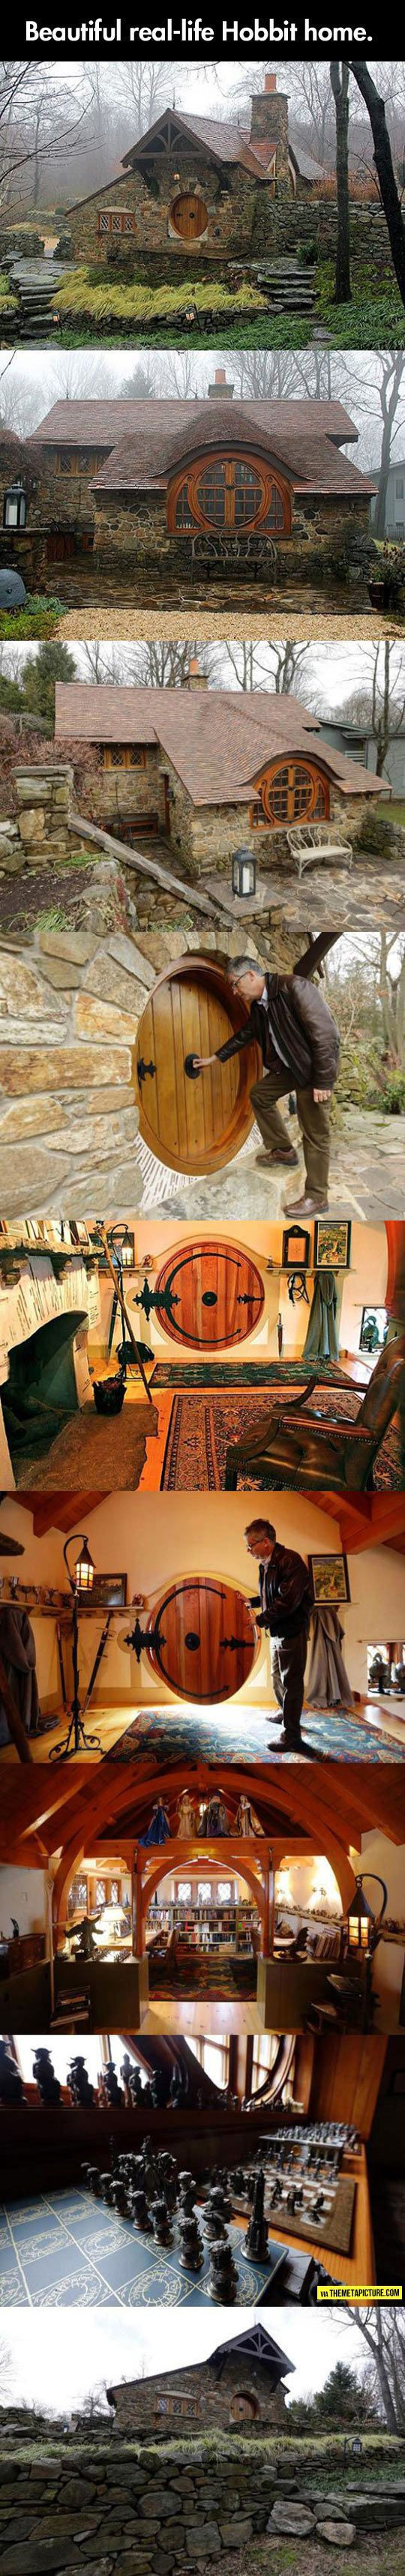 Oh my goodness, oh my goodness! I would never leave! Is it just me or would it be the most amazing time in the history of the world to read the lord of the rings while sitting in a hobbit house! Uh, yes I did just realize how unapologetically nerdy I truly am!